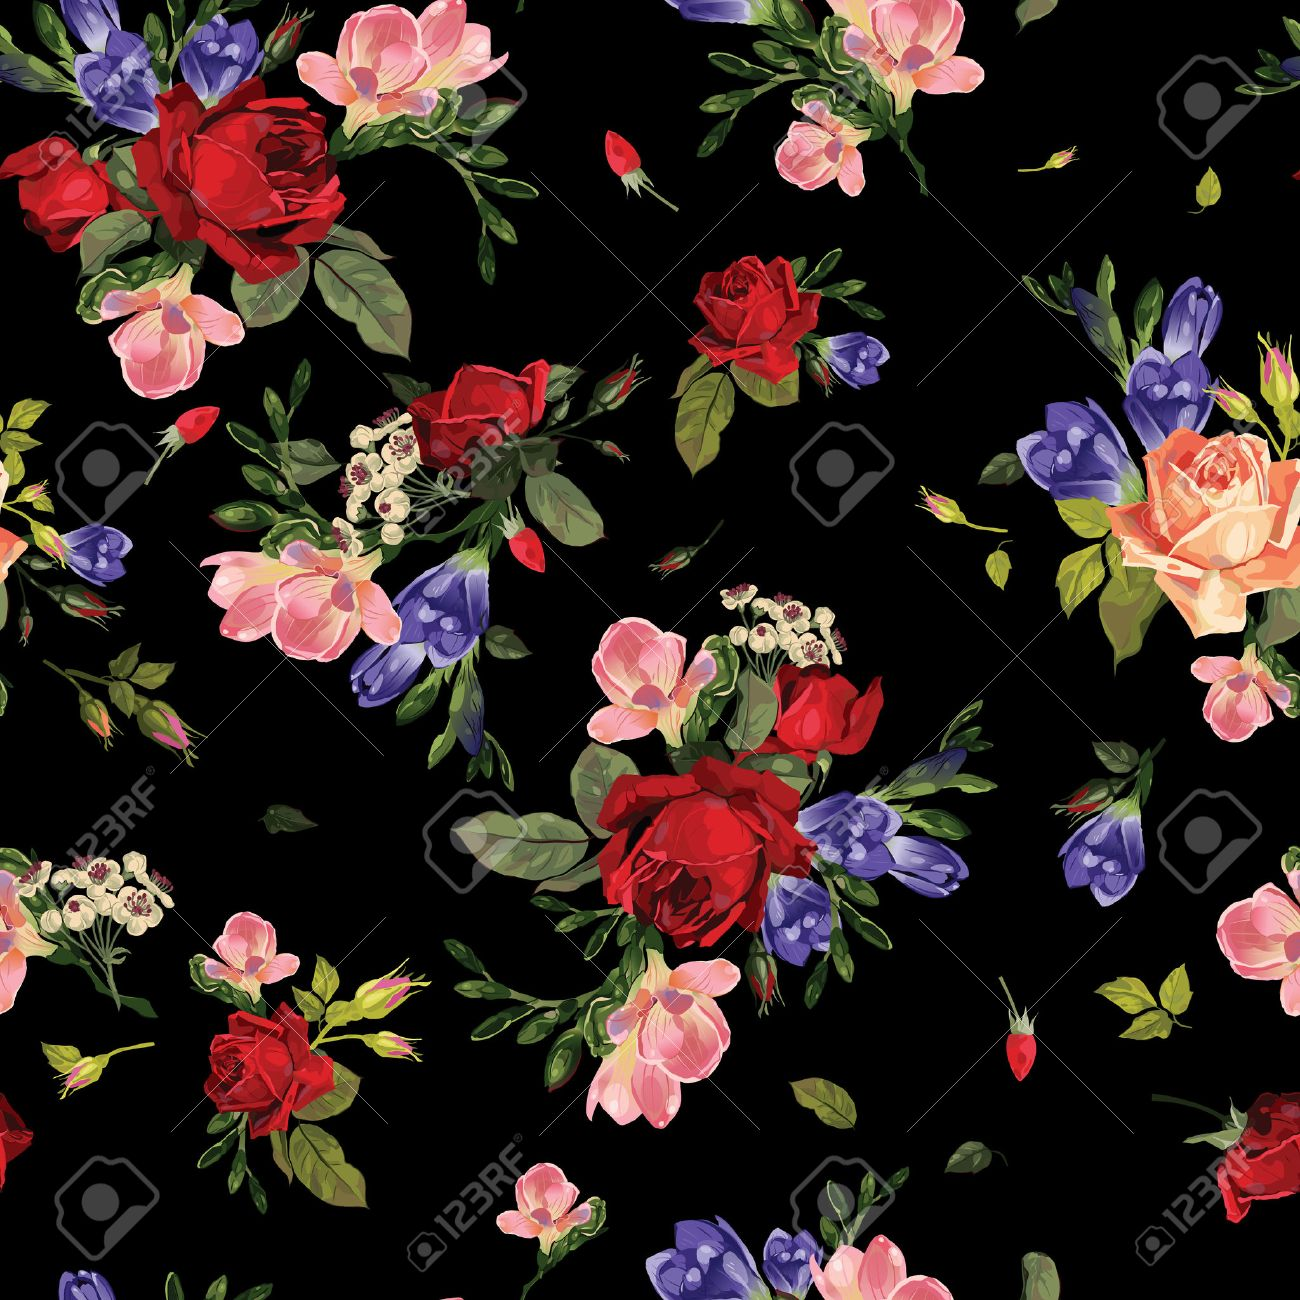 Abstract Seamless Floral Pattern With Of Red Roses And Pink